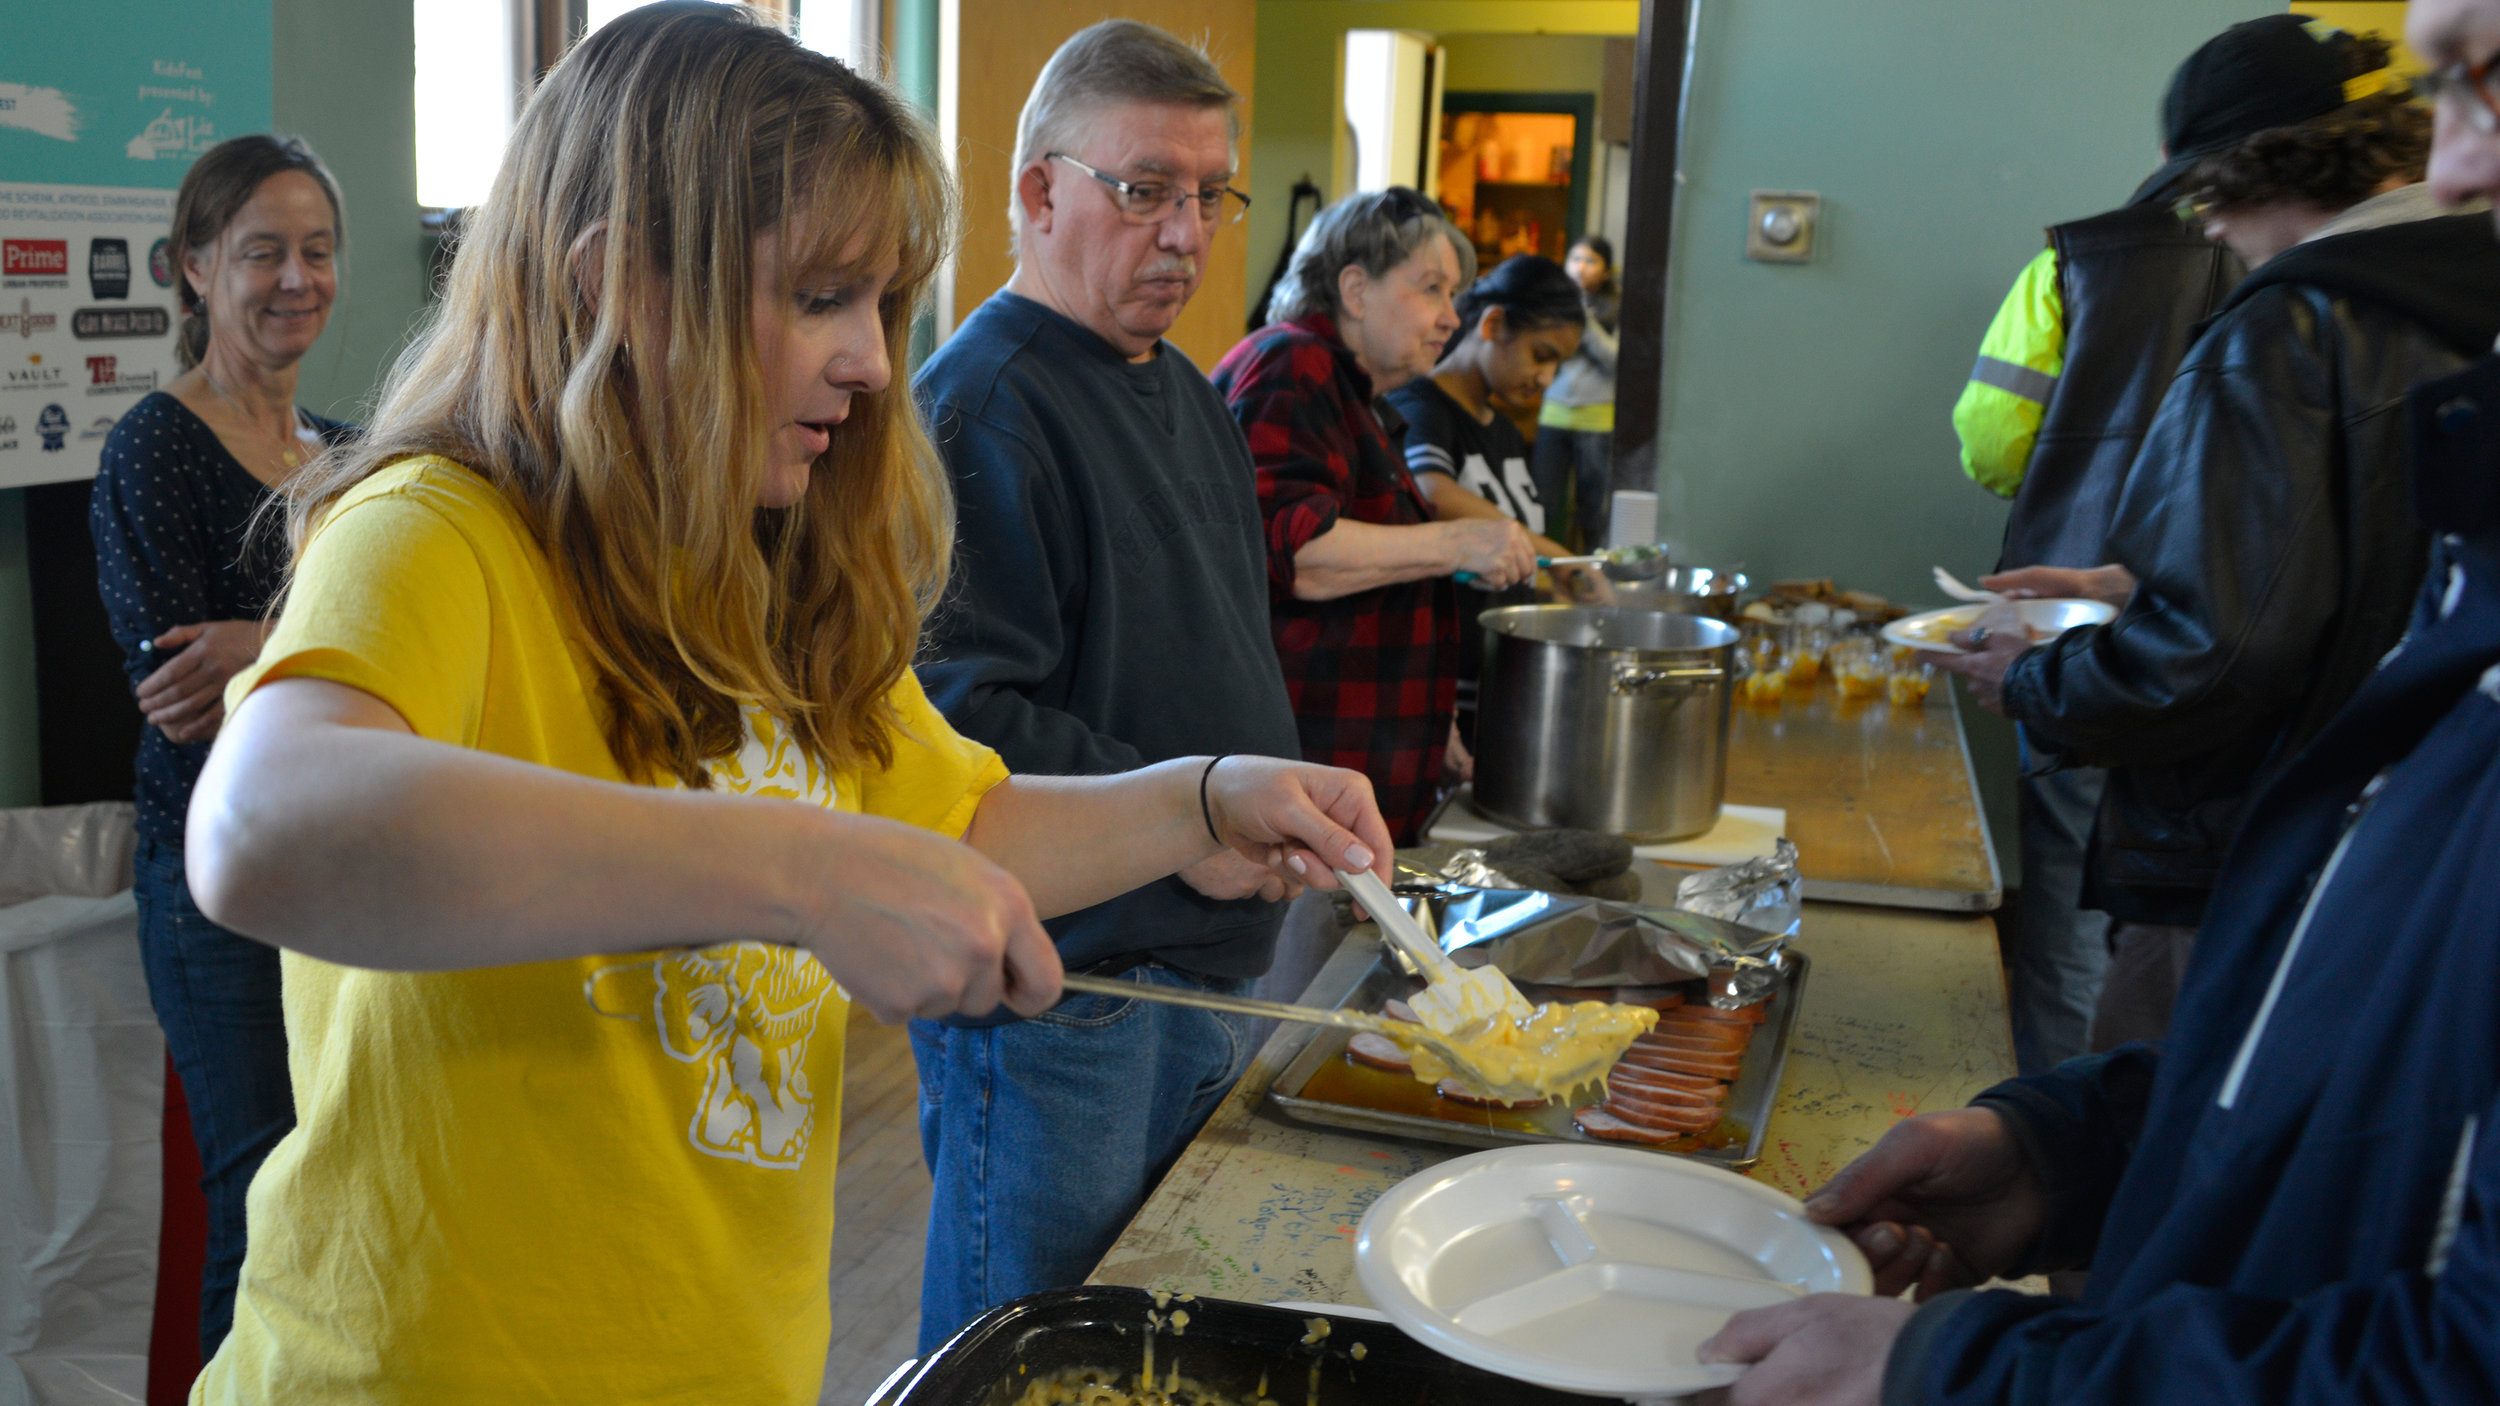 Volunteers serve up a hot meal during the Saturday Free Community Meal, offered every Saturday from 11:30 a.m. - 12:30 p.m.